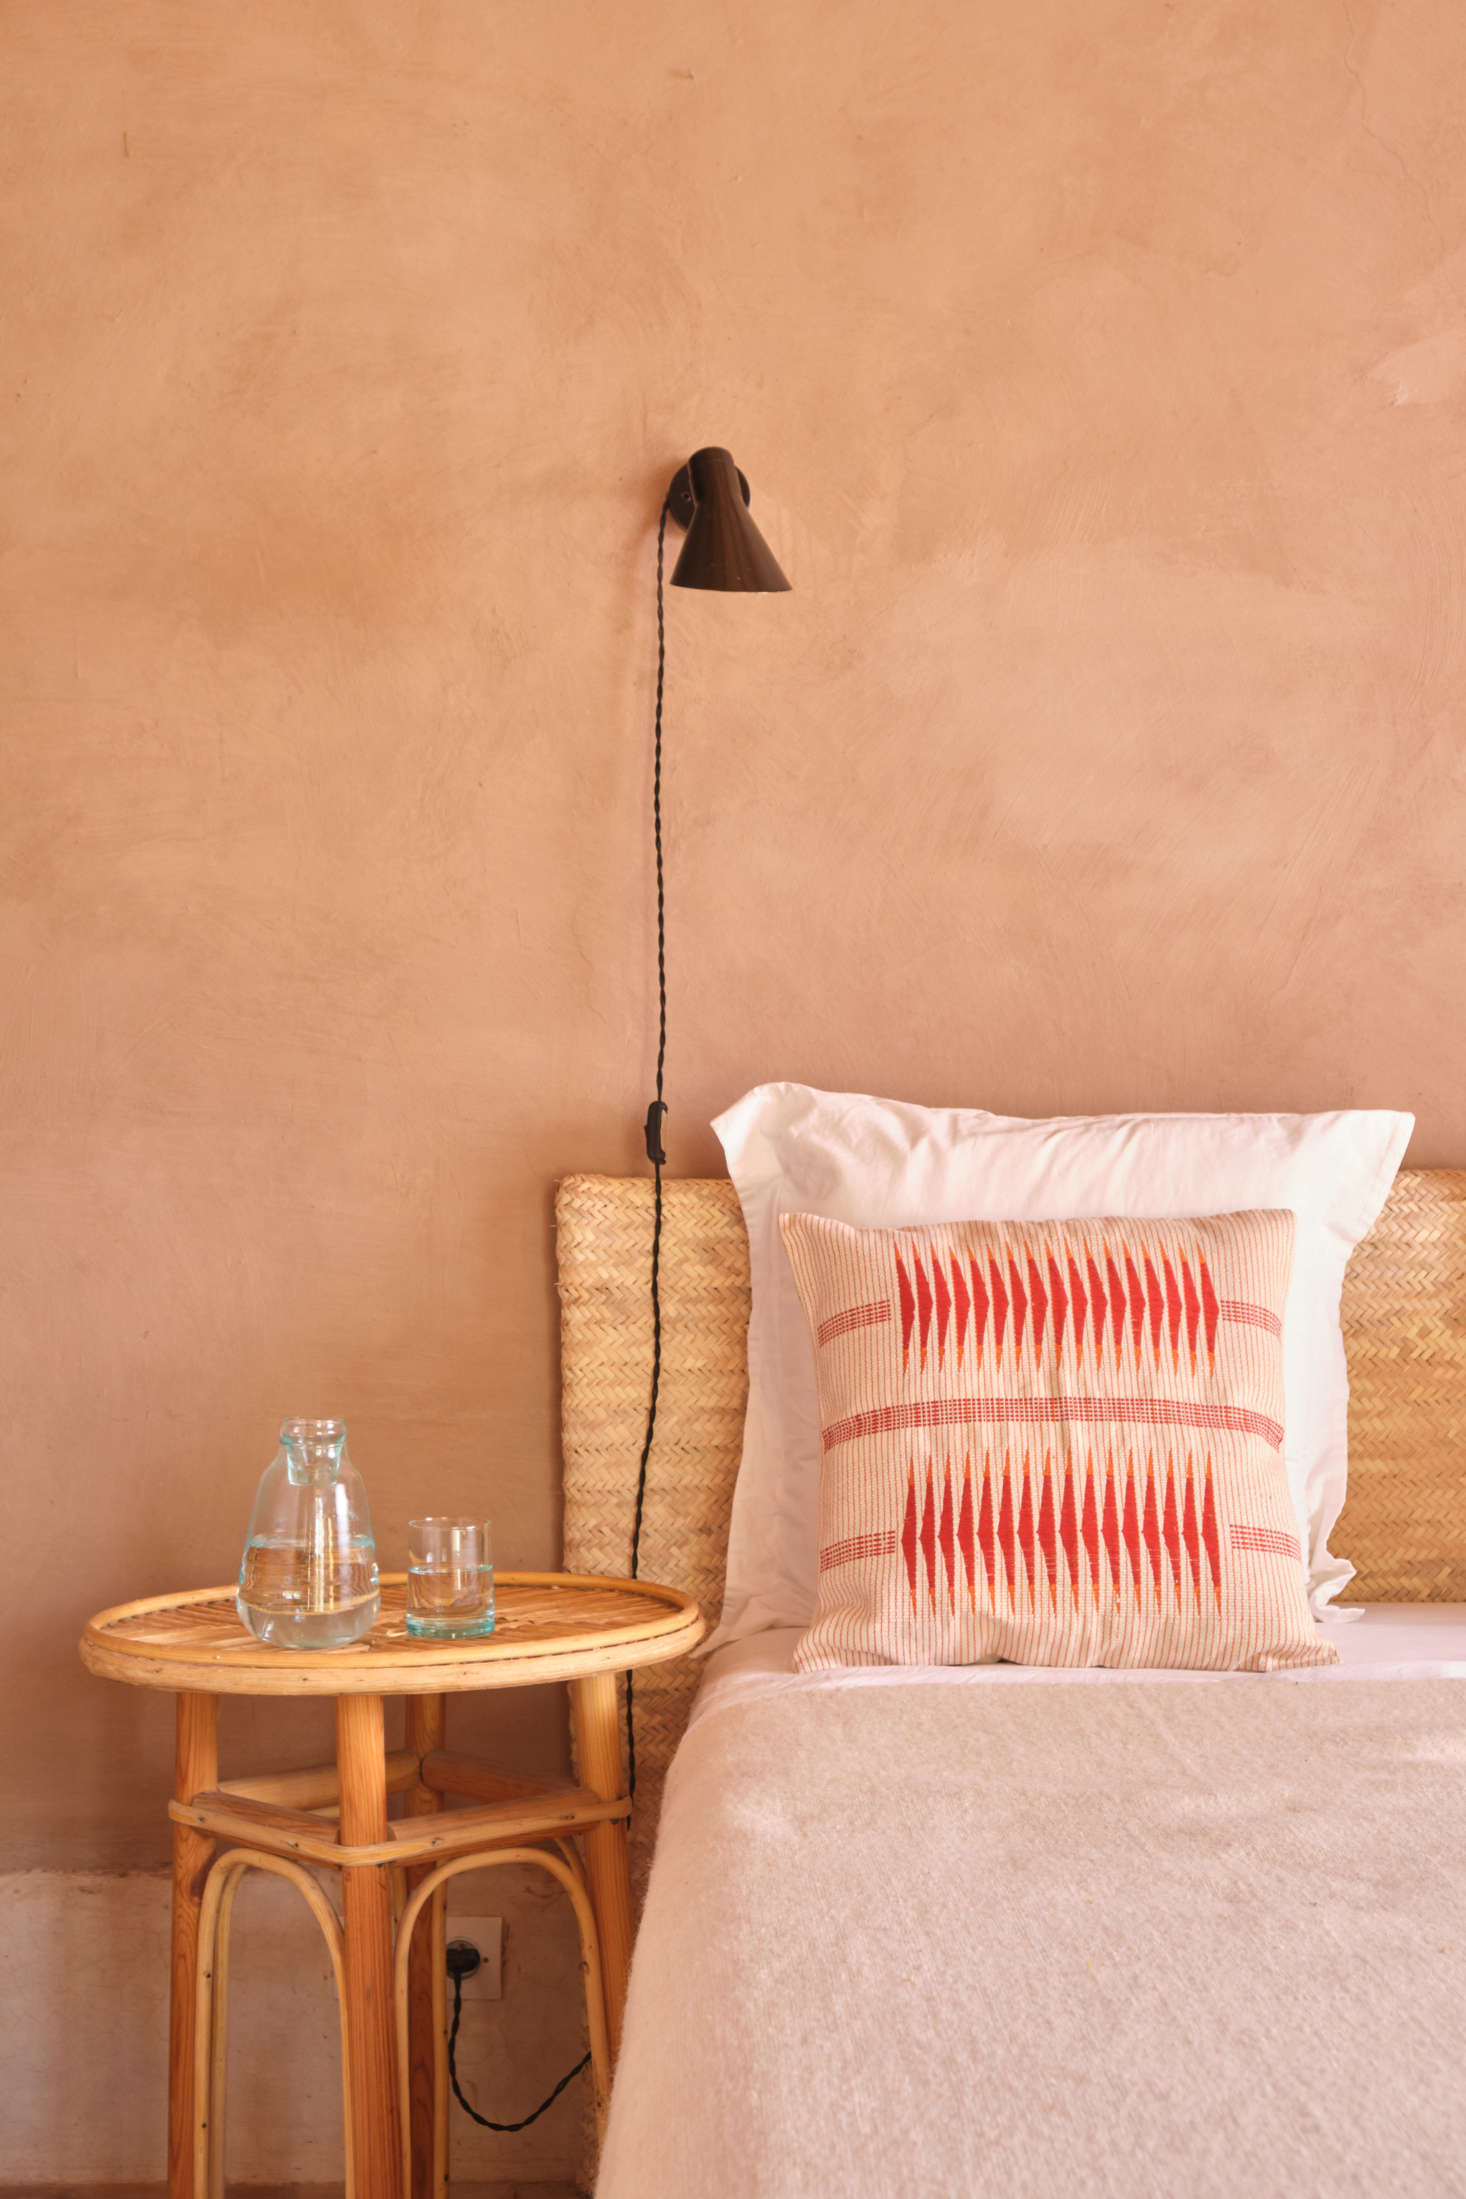 The new Milak Cushion ($99) is made from 0 percent cotton and handwoven in Nagaland on loin and backstrap looms by heritage weavers. Alongside is the Moroccan Bedside Carafe ($39), made of recycled glass, with a lid that conveniently doubles as a bedside drinking glass.